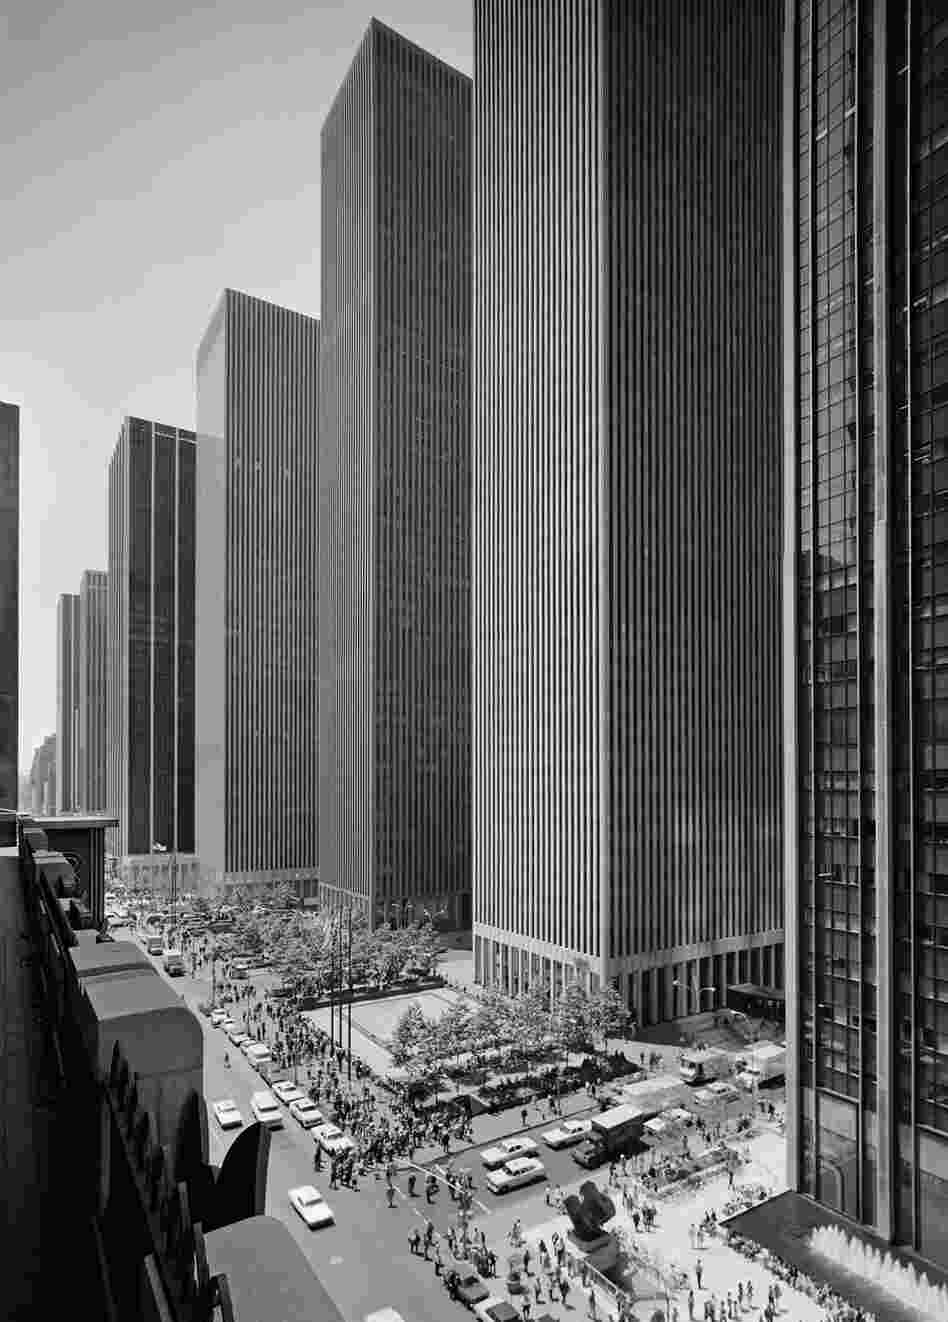 Exxon Building on Sixth Avenue, Harrison and Abramovitz, New York, N.Y., 1974